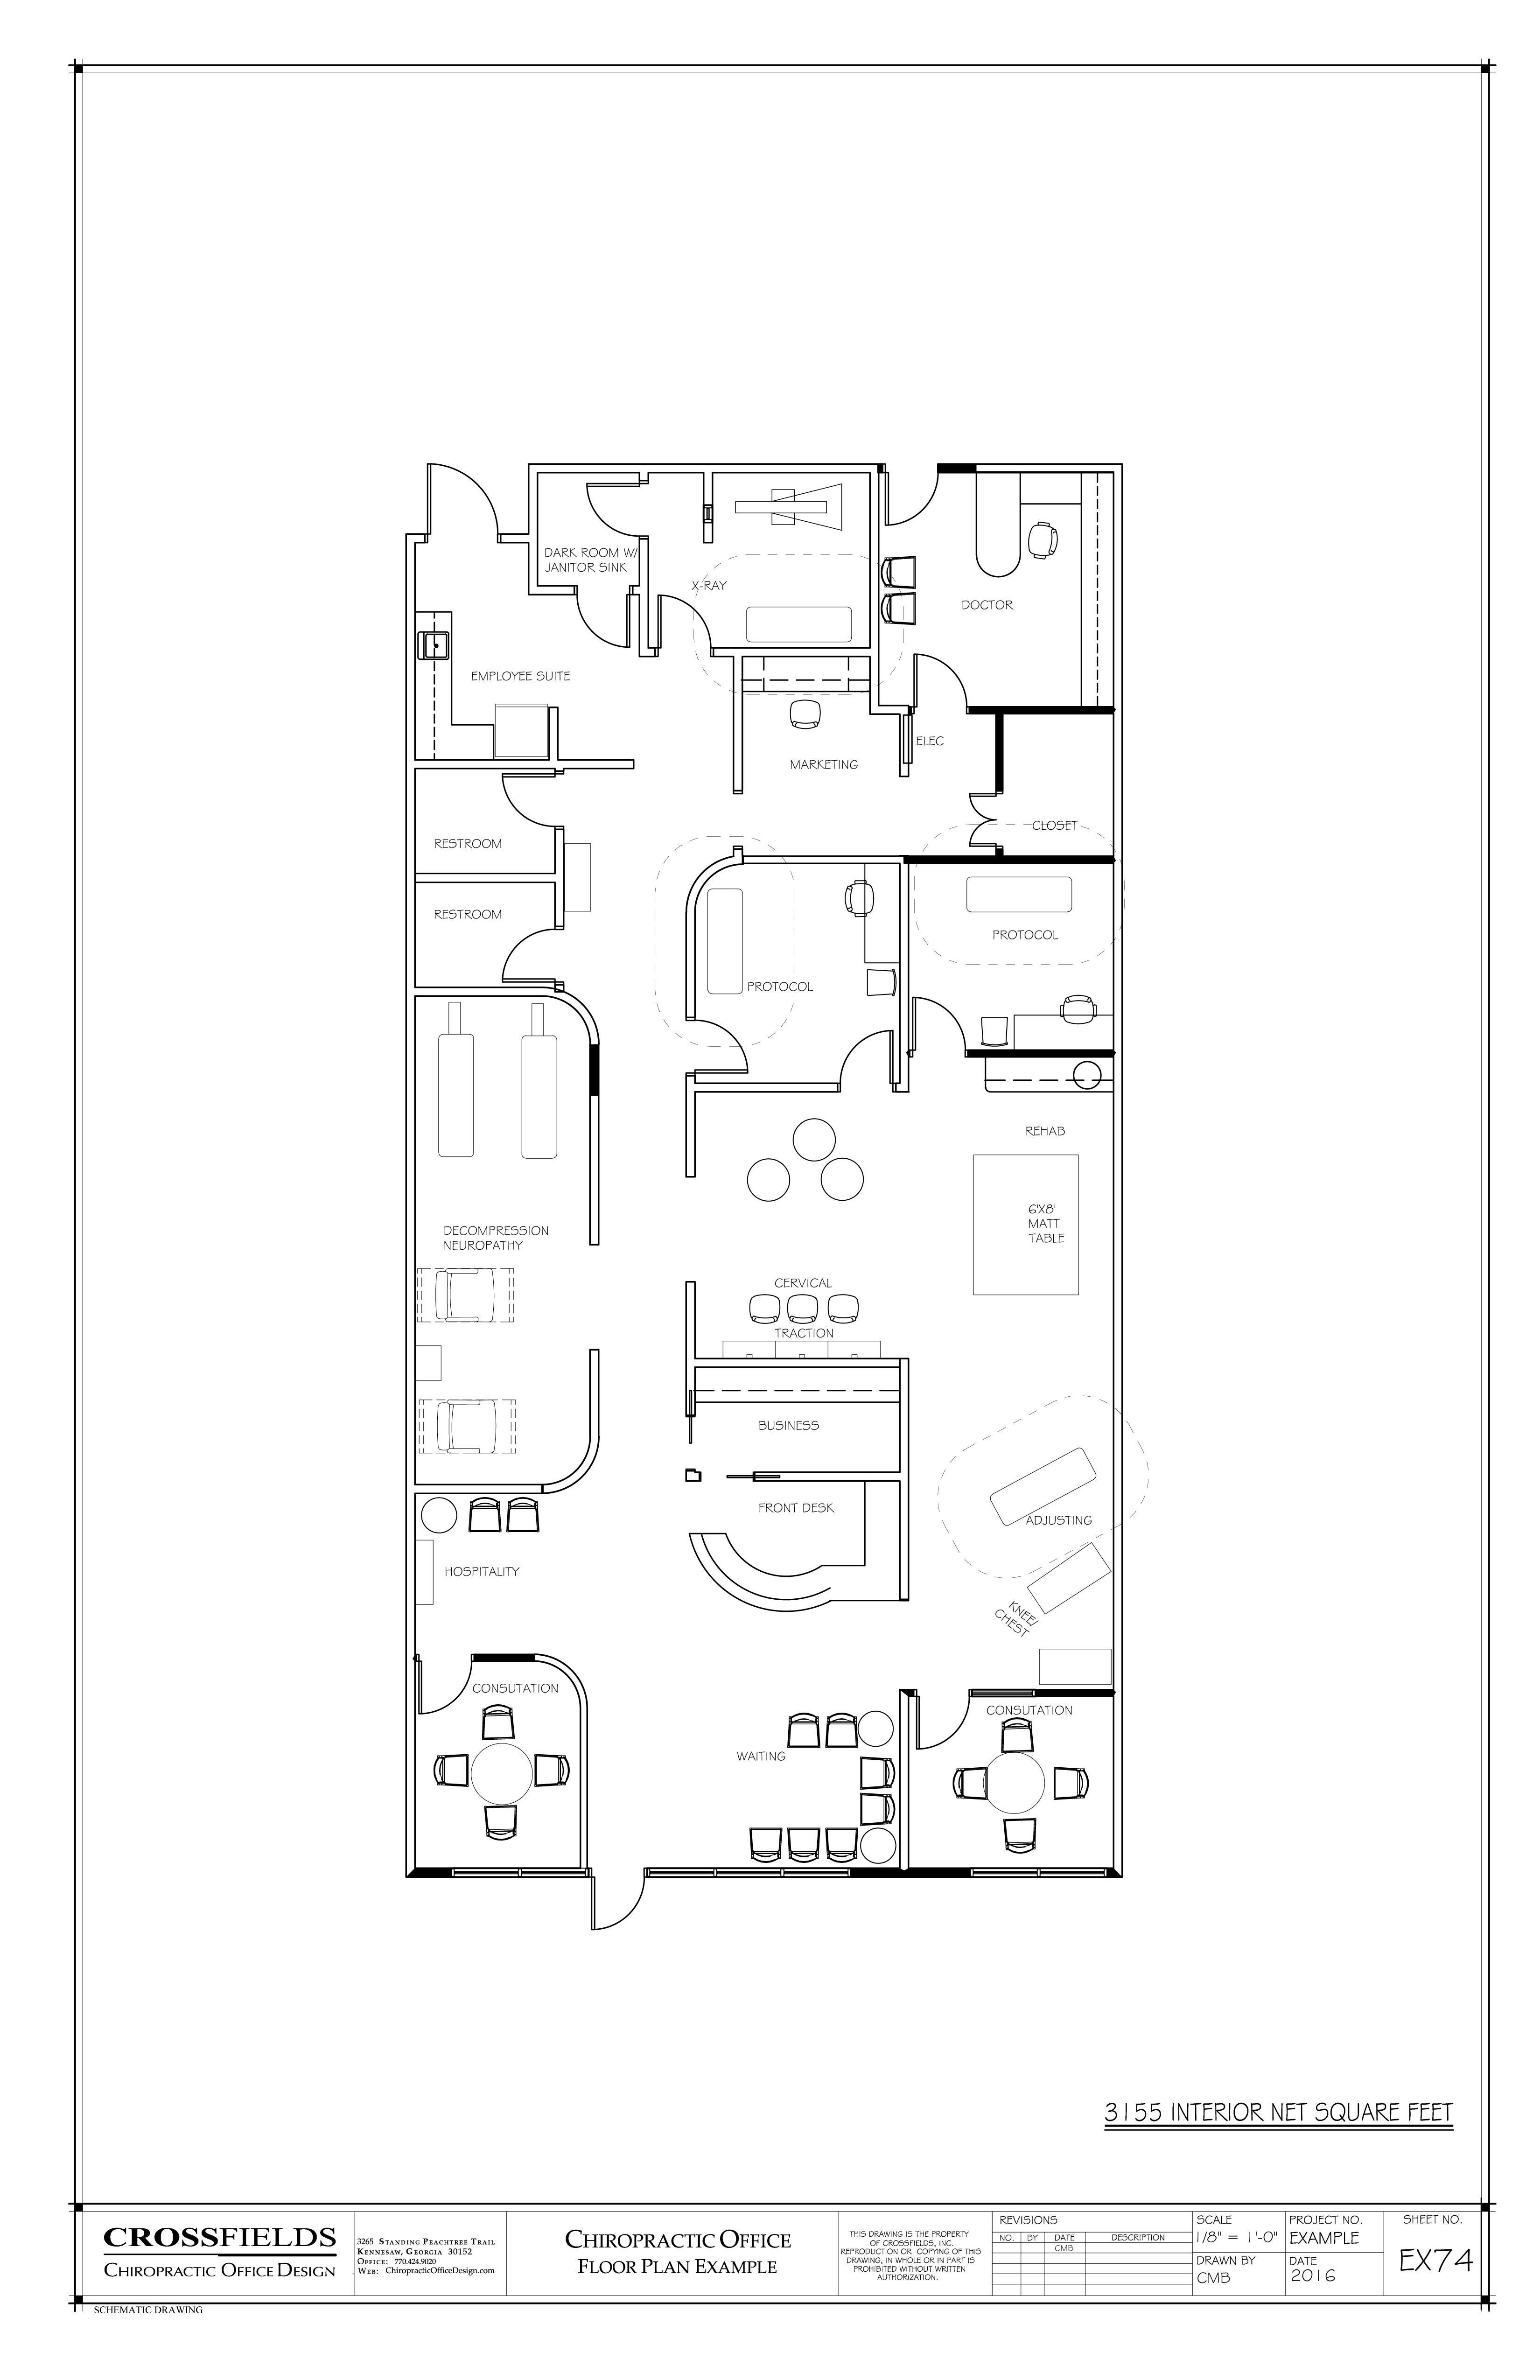 373ea2d244ef075b3592facad307a4fc Doctor Office Floor Plan Template Office Home Plans Ideas Picture On 3d Floor Plans